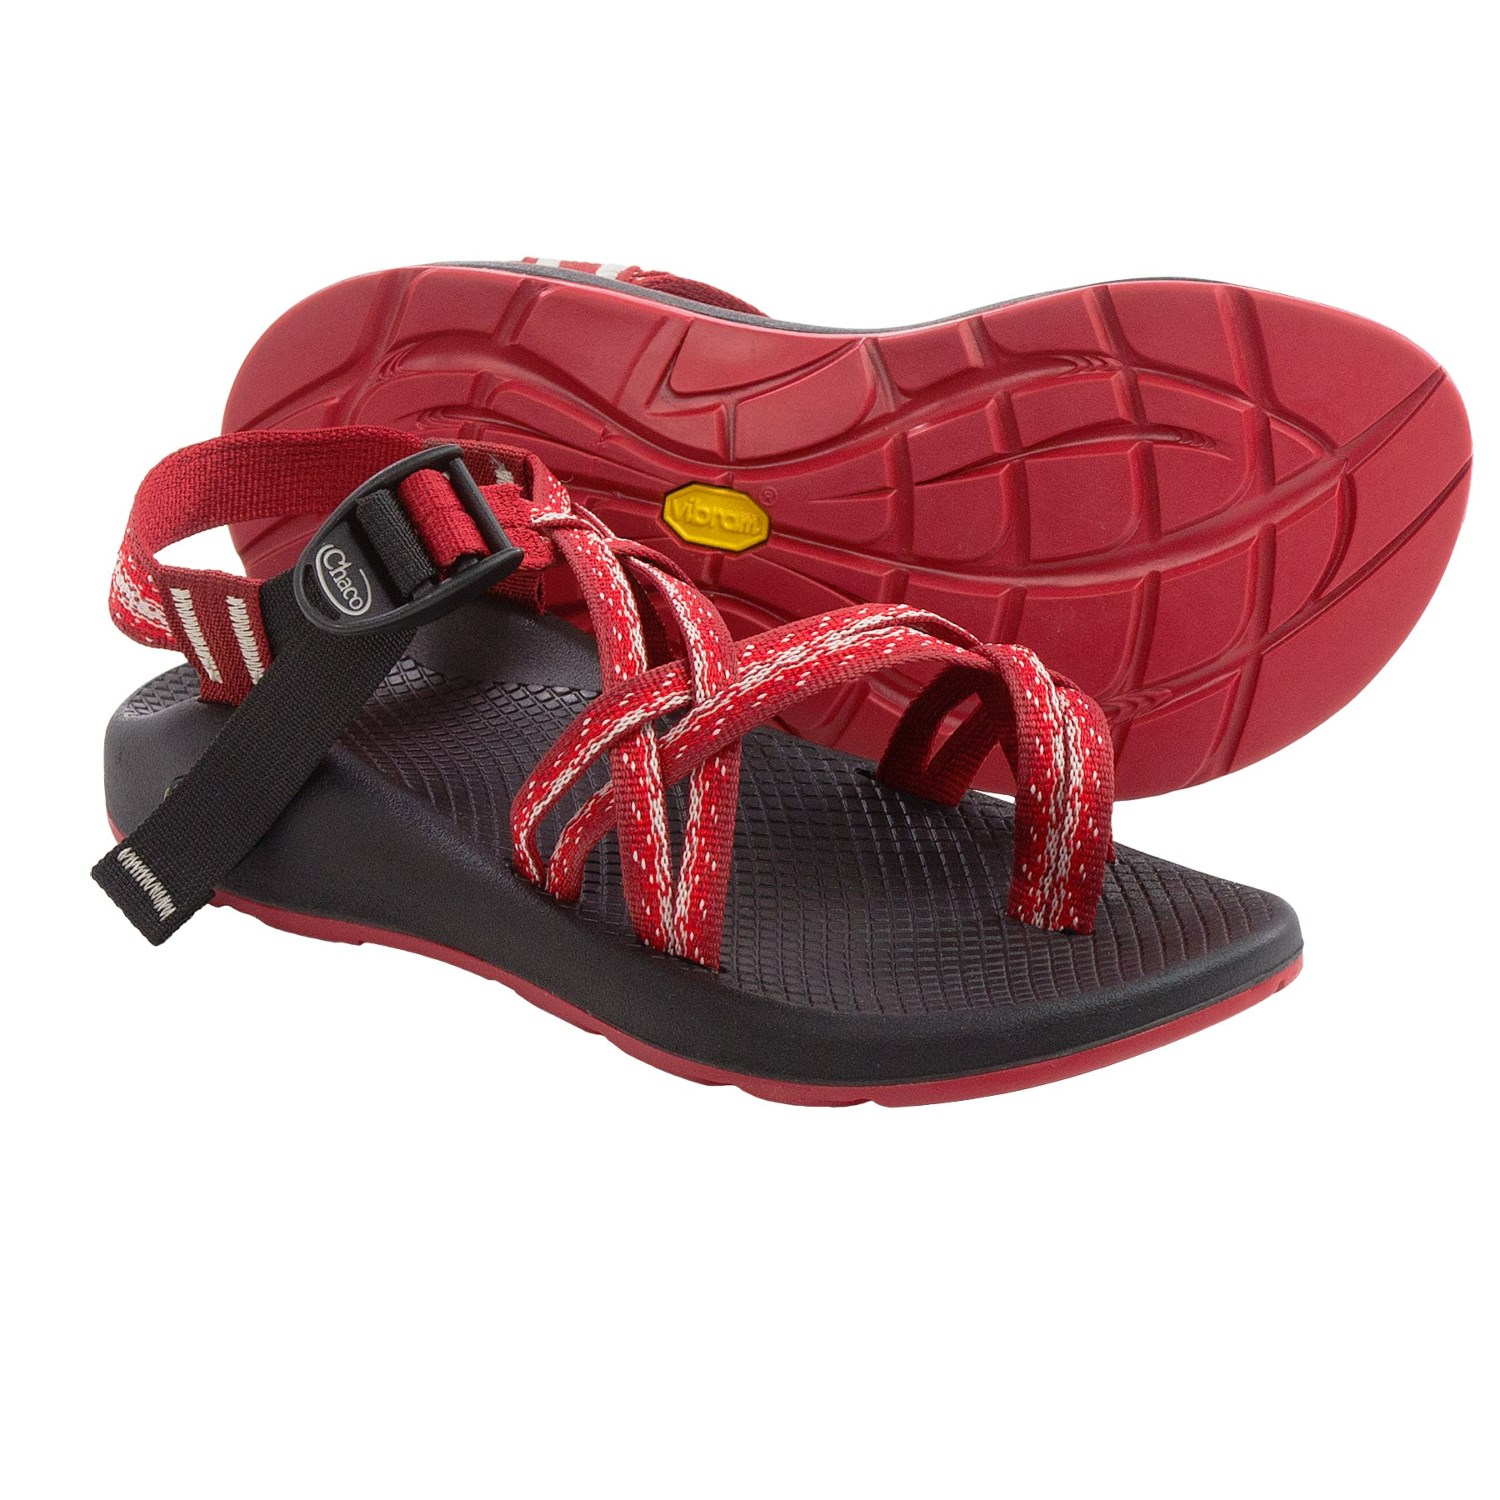 Elegant I Loved To Step Away From A Total Bright Pink For My Daughter With The Rosered Colored Loyalist  Colors And Retail For $60 Each Chaco Shoes Are Proudly Made In The USA! Chaco Features Many Footwear Options For Men, Women And